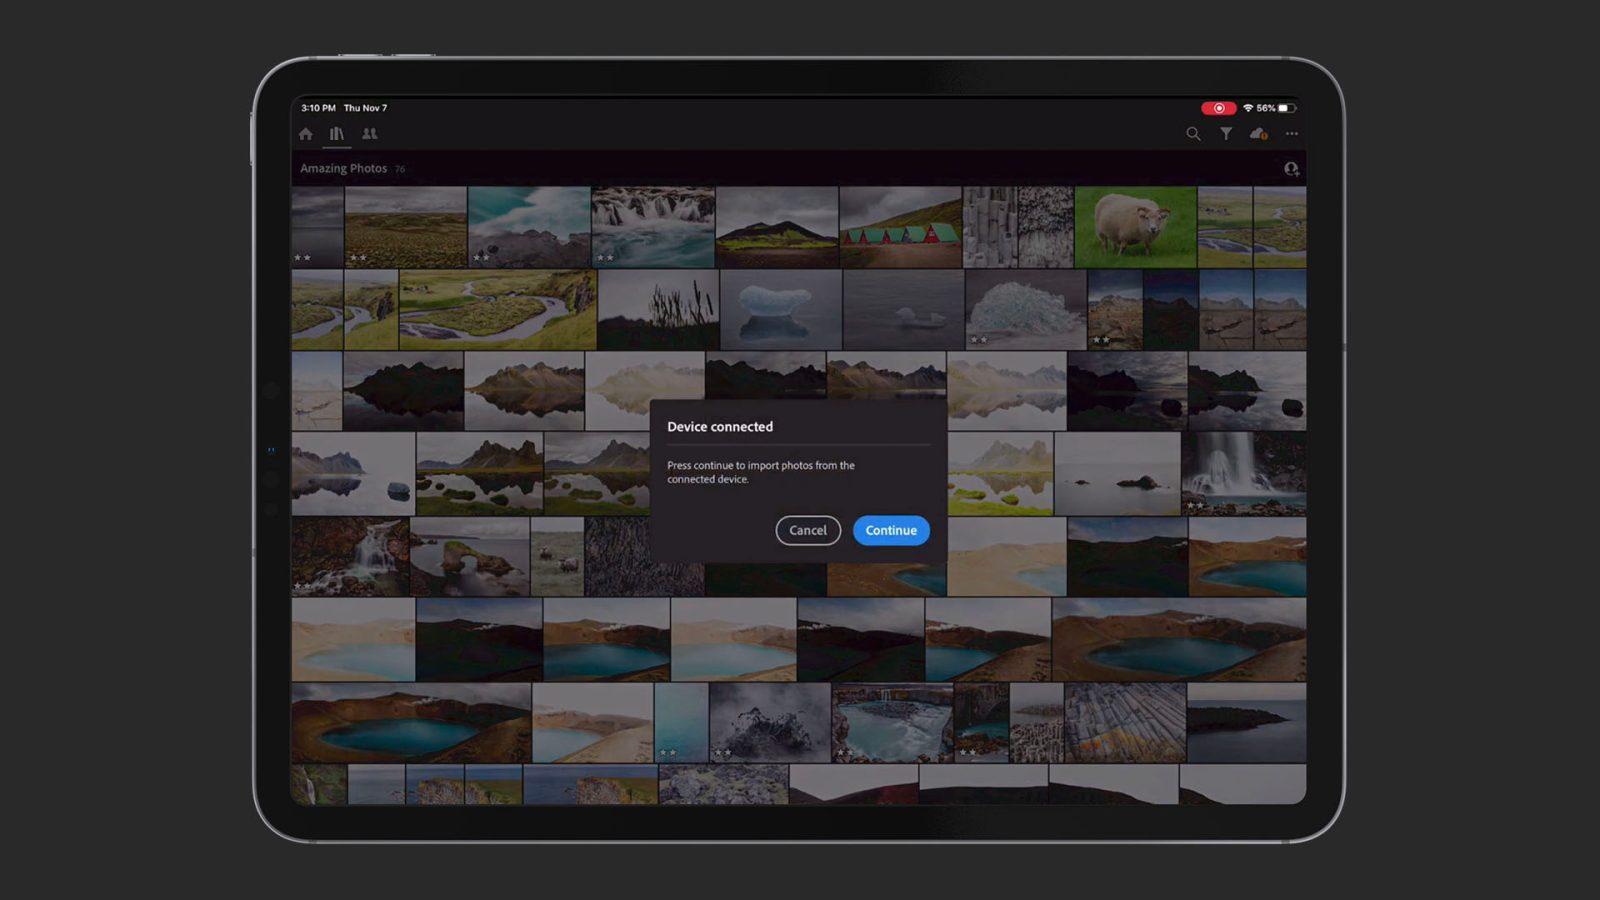 Adobe previews direct photo import coming to Lightroom on iPad